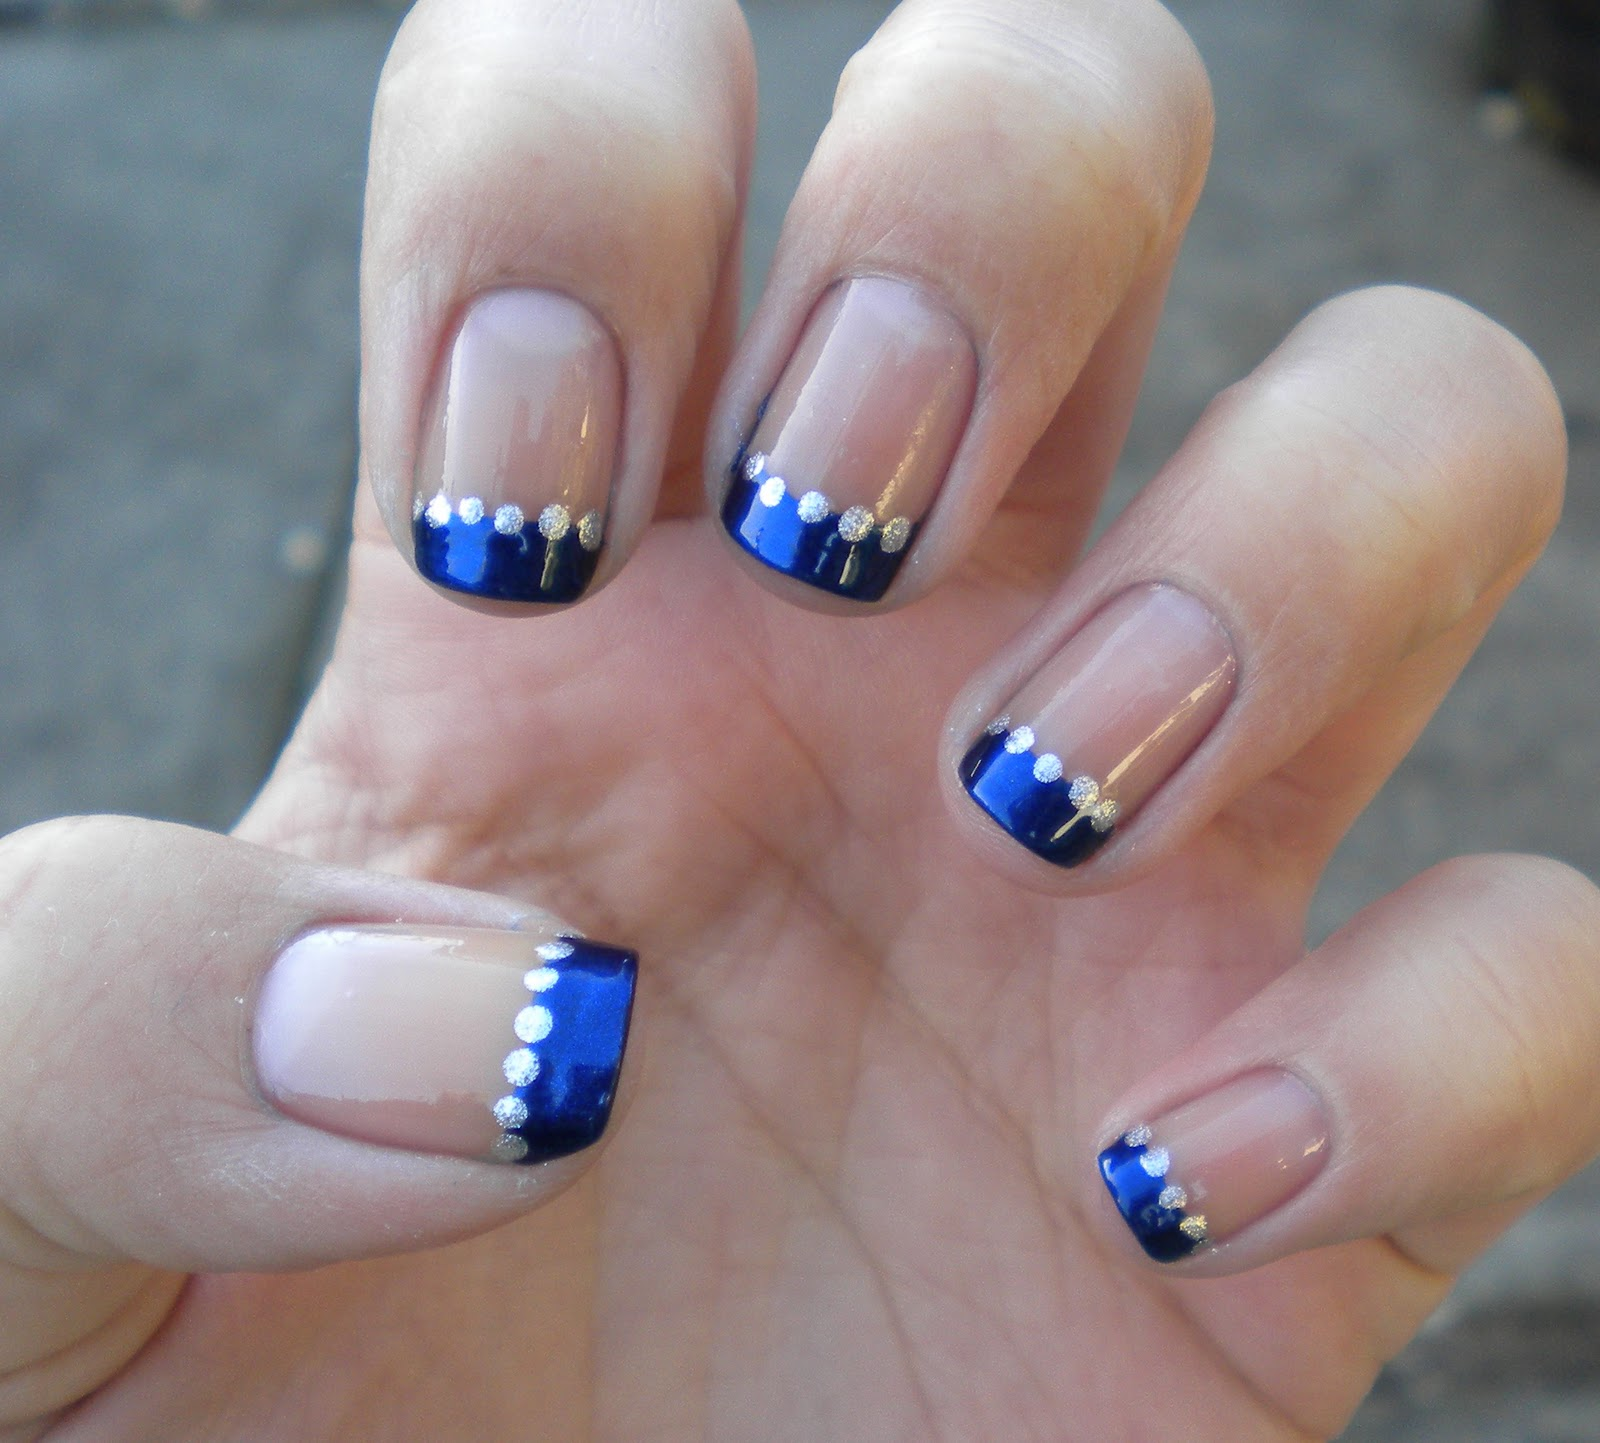 Smile For The Little Things: French Manicure Variation